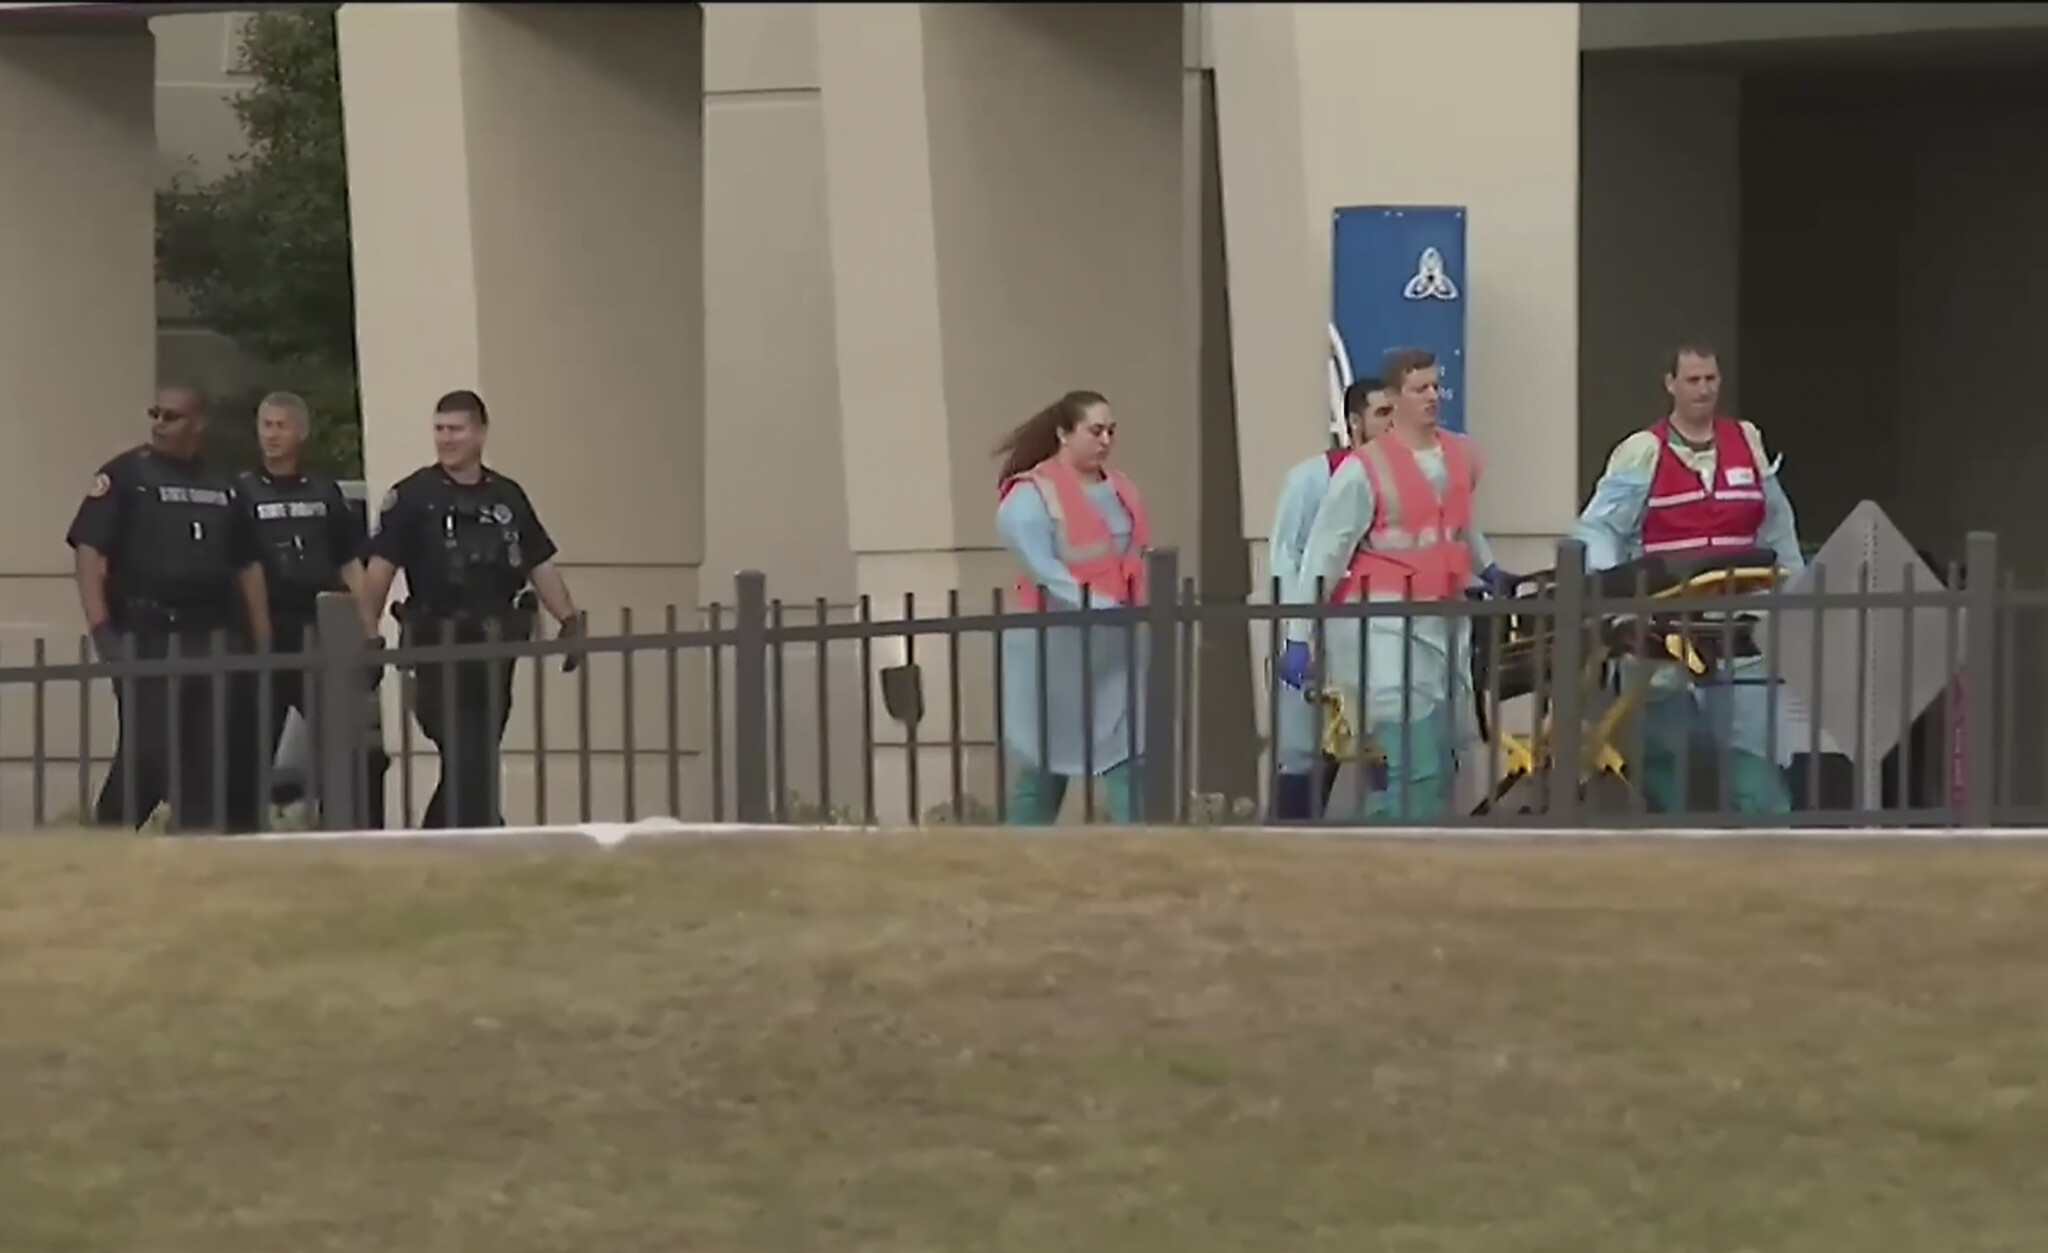 Esper: Pentagon Reviewing Screening Process after Pensacola Shooting